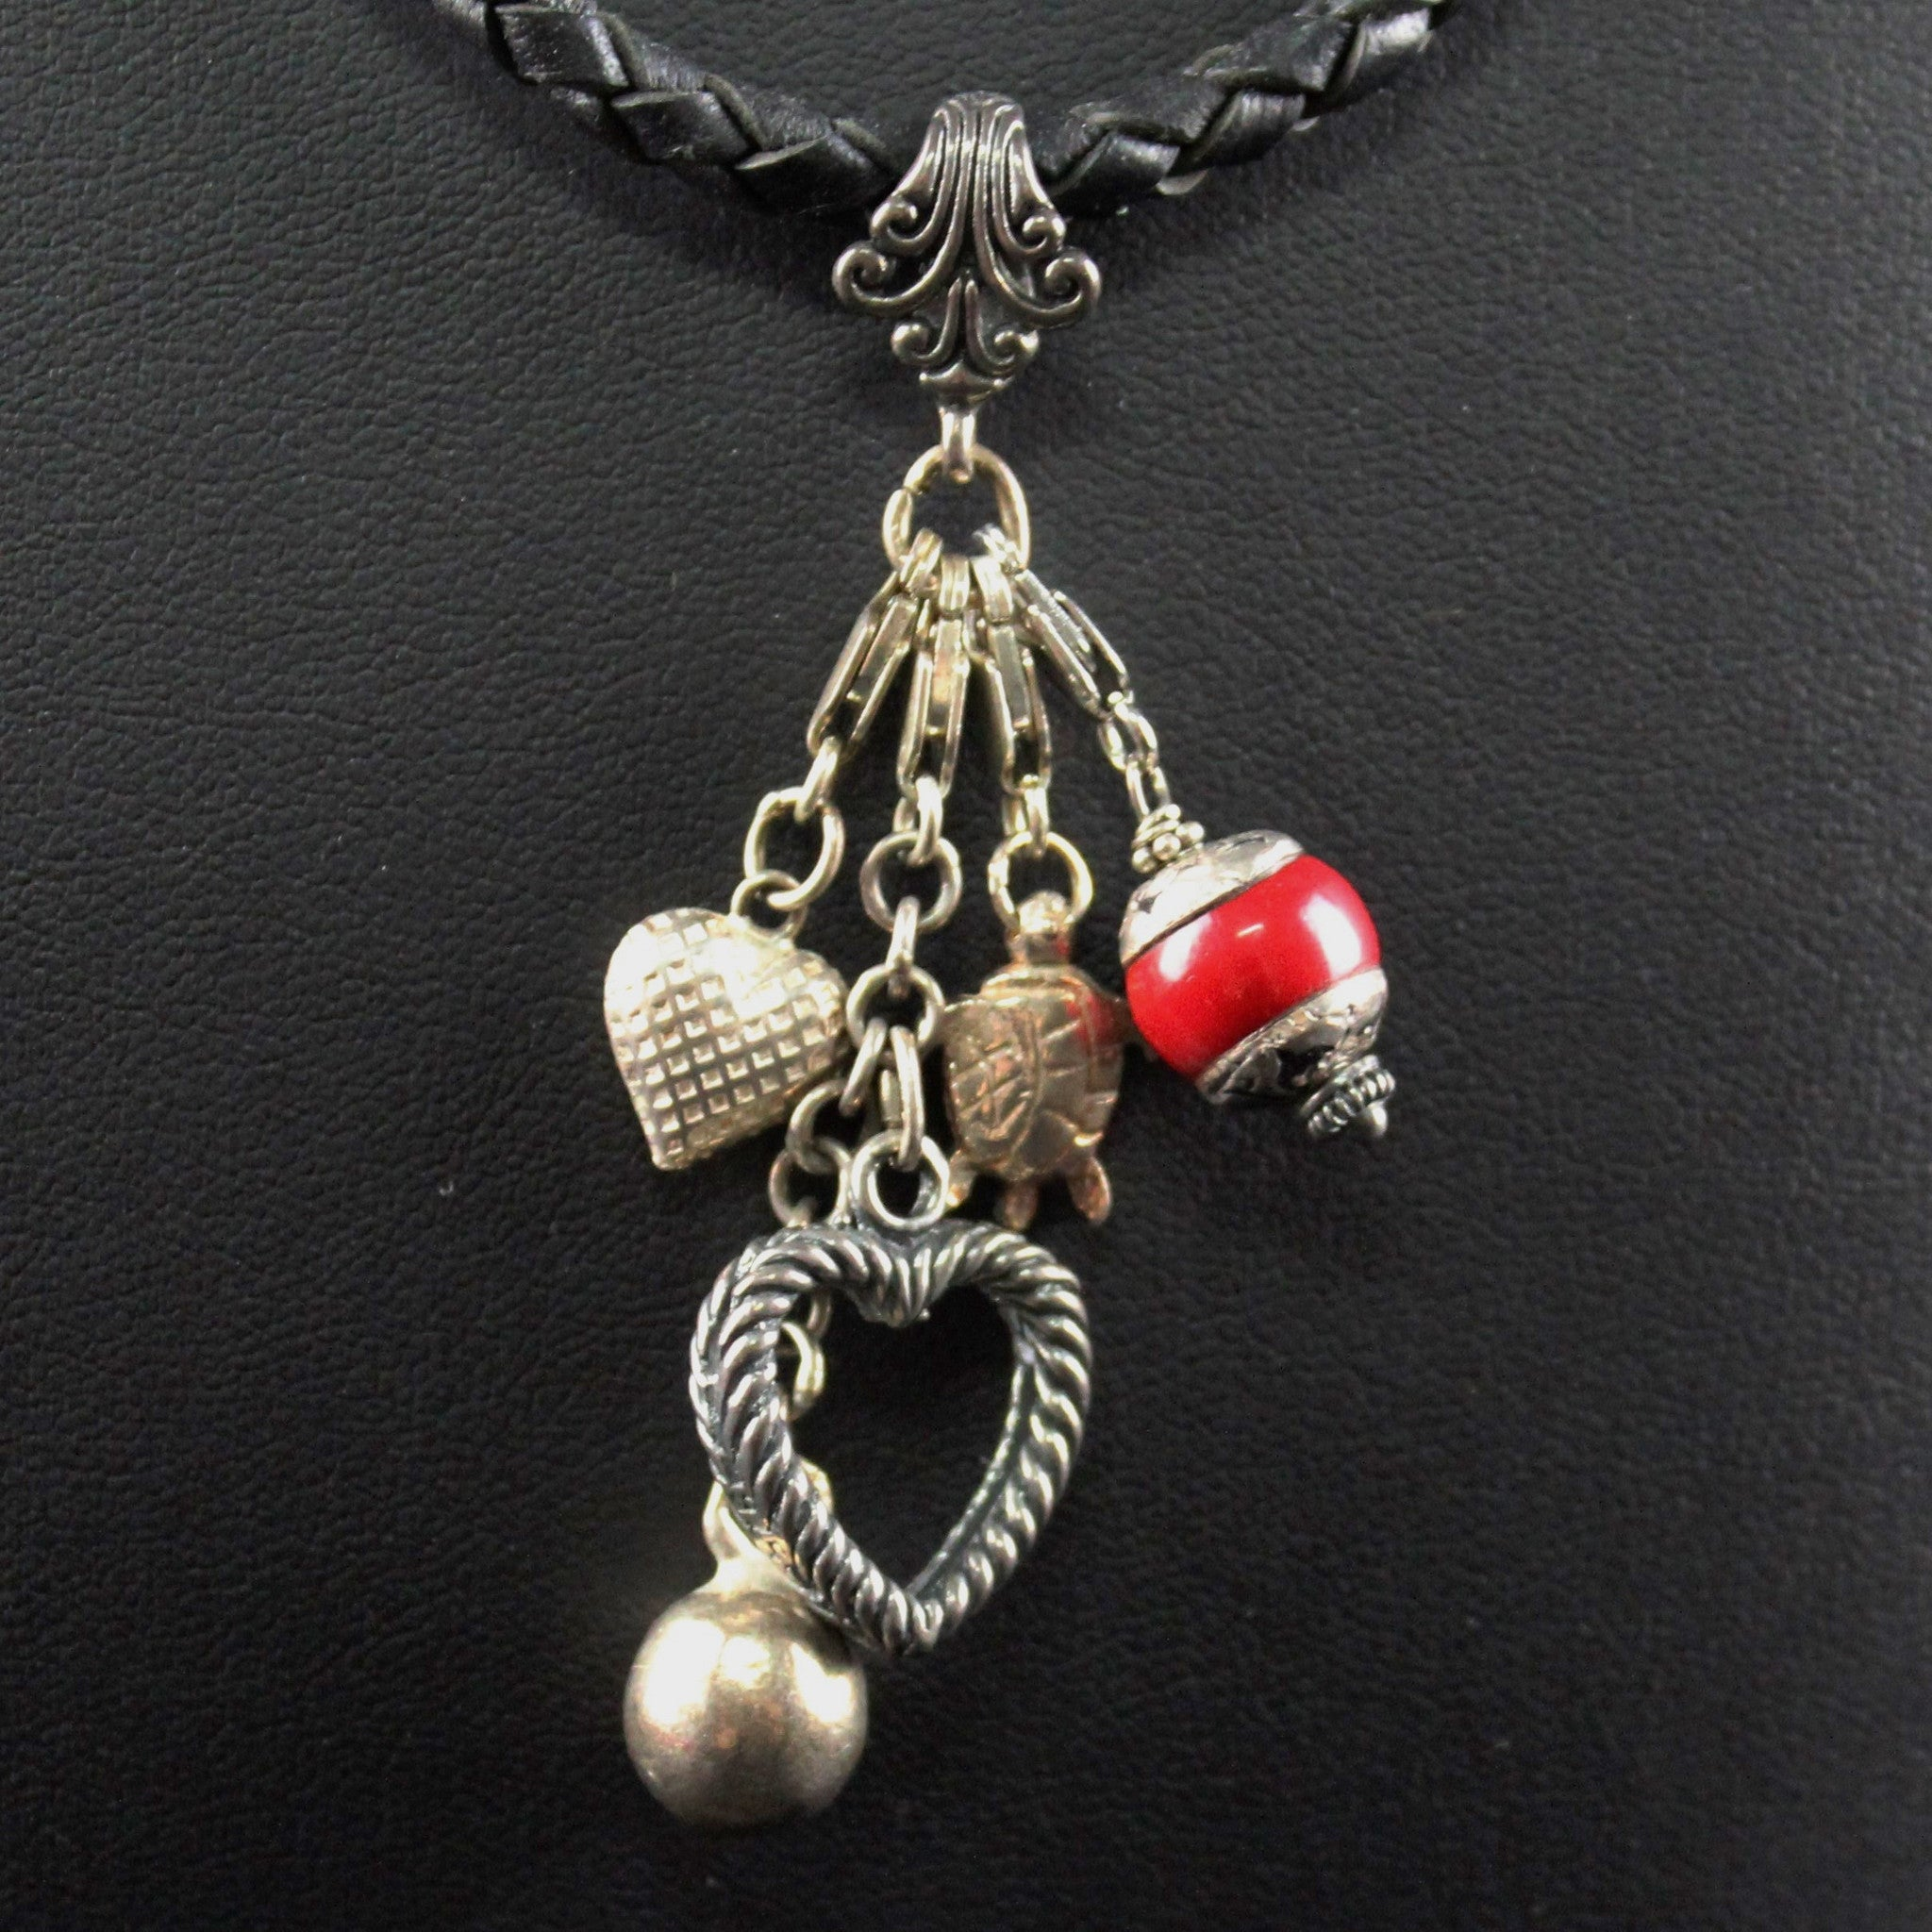 Susan M - Leather and charms necklace